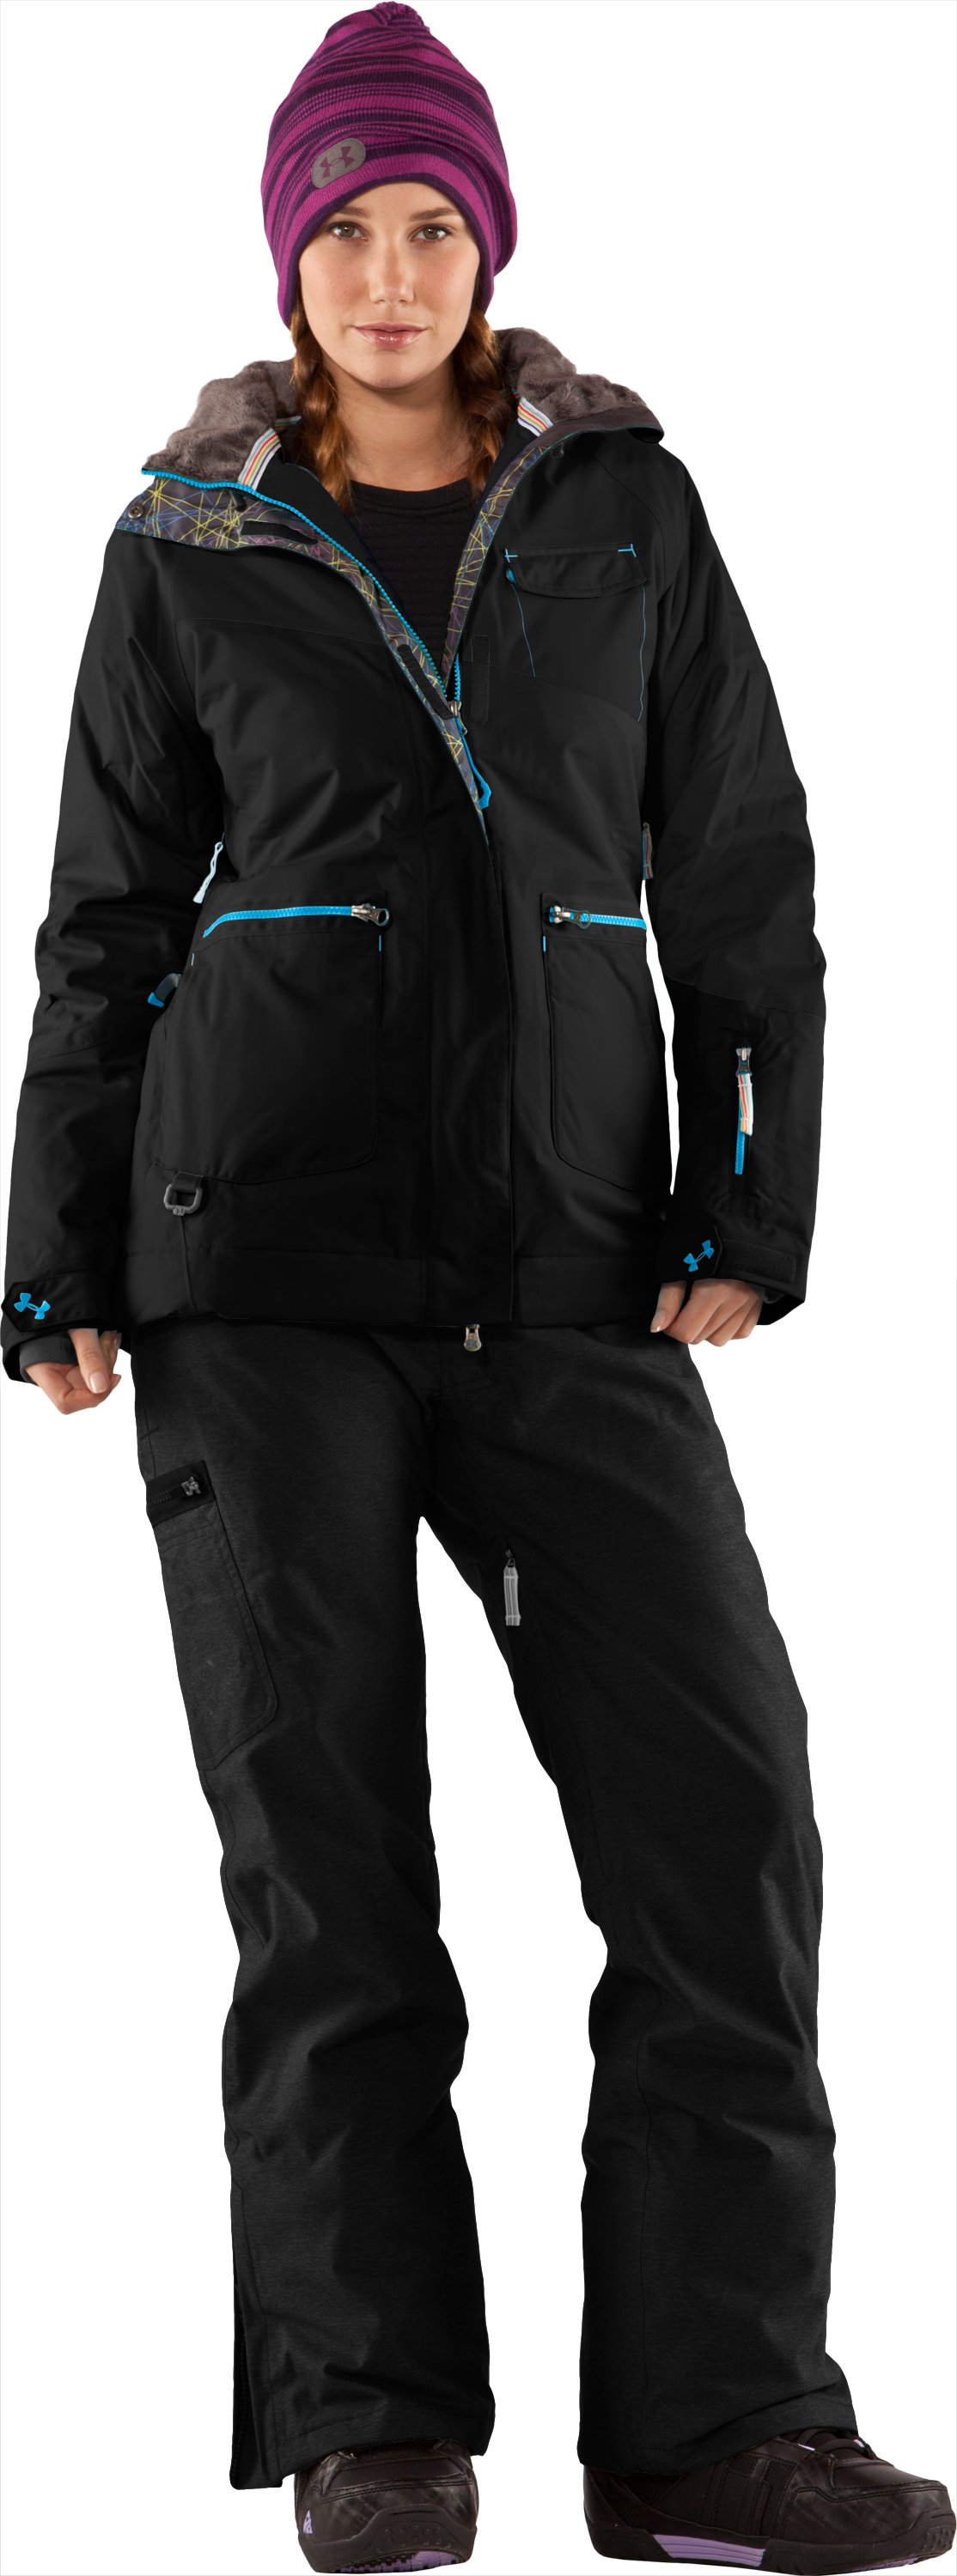 Women's Blar Waterproof Ski Jacket, Black